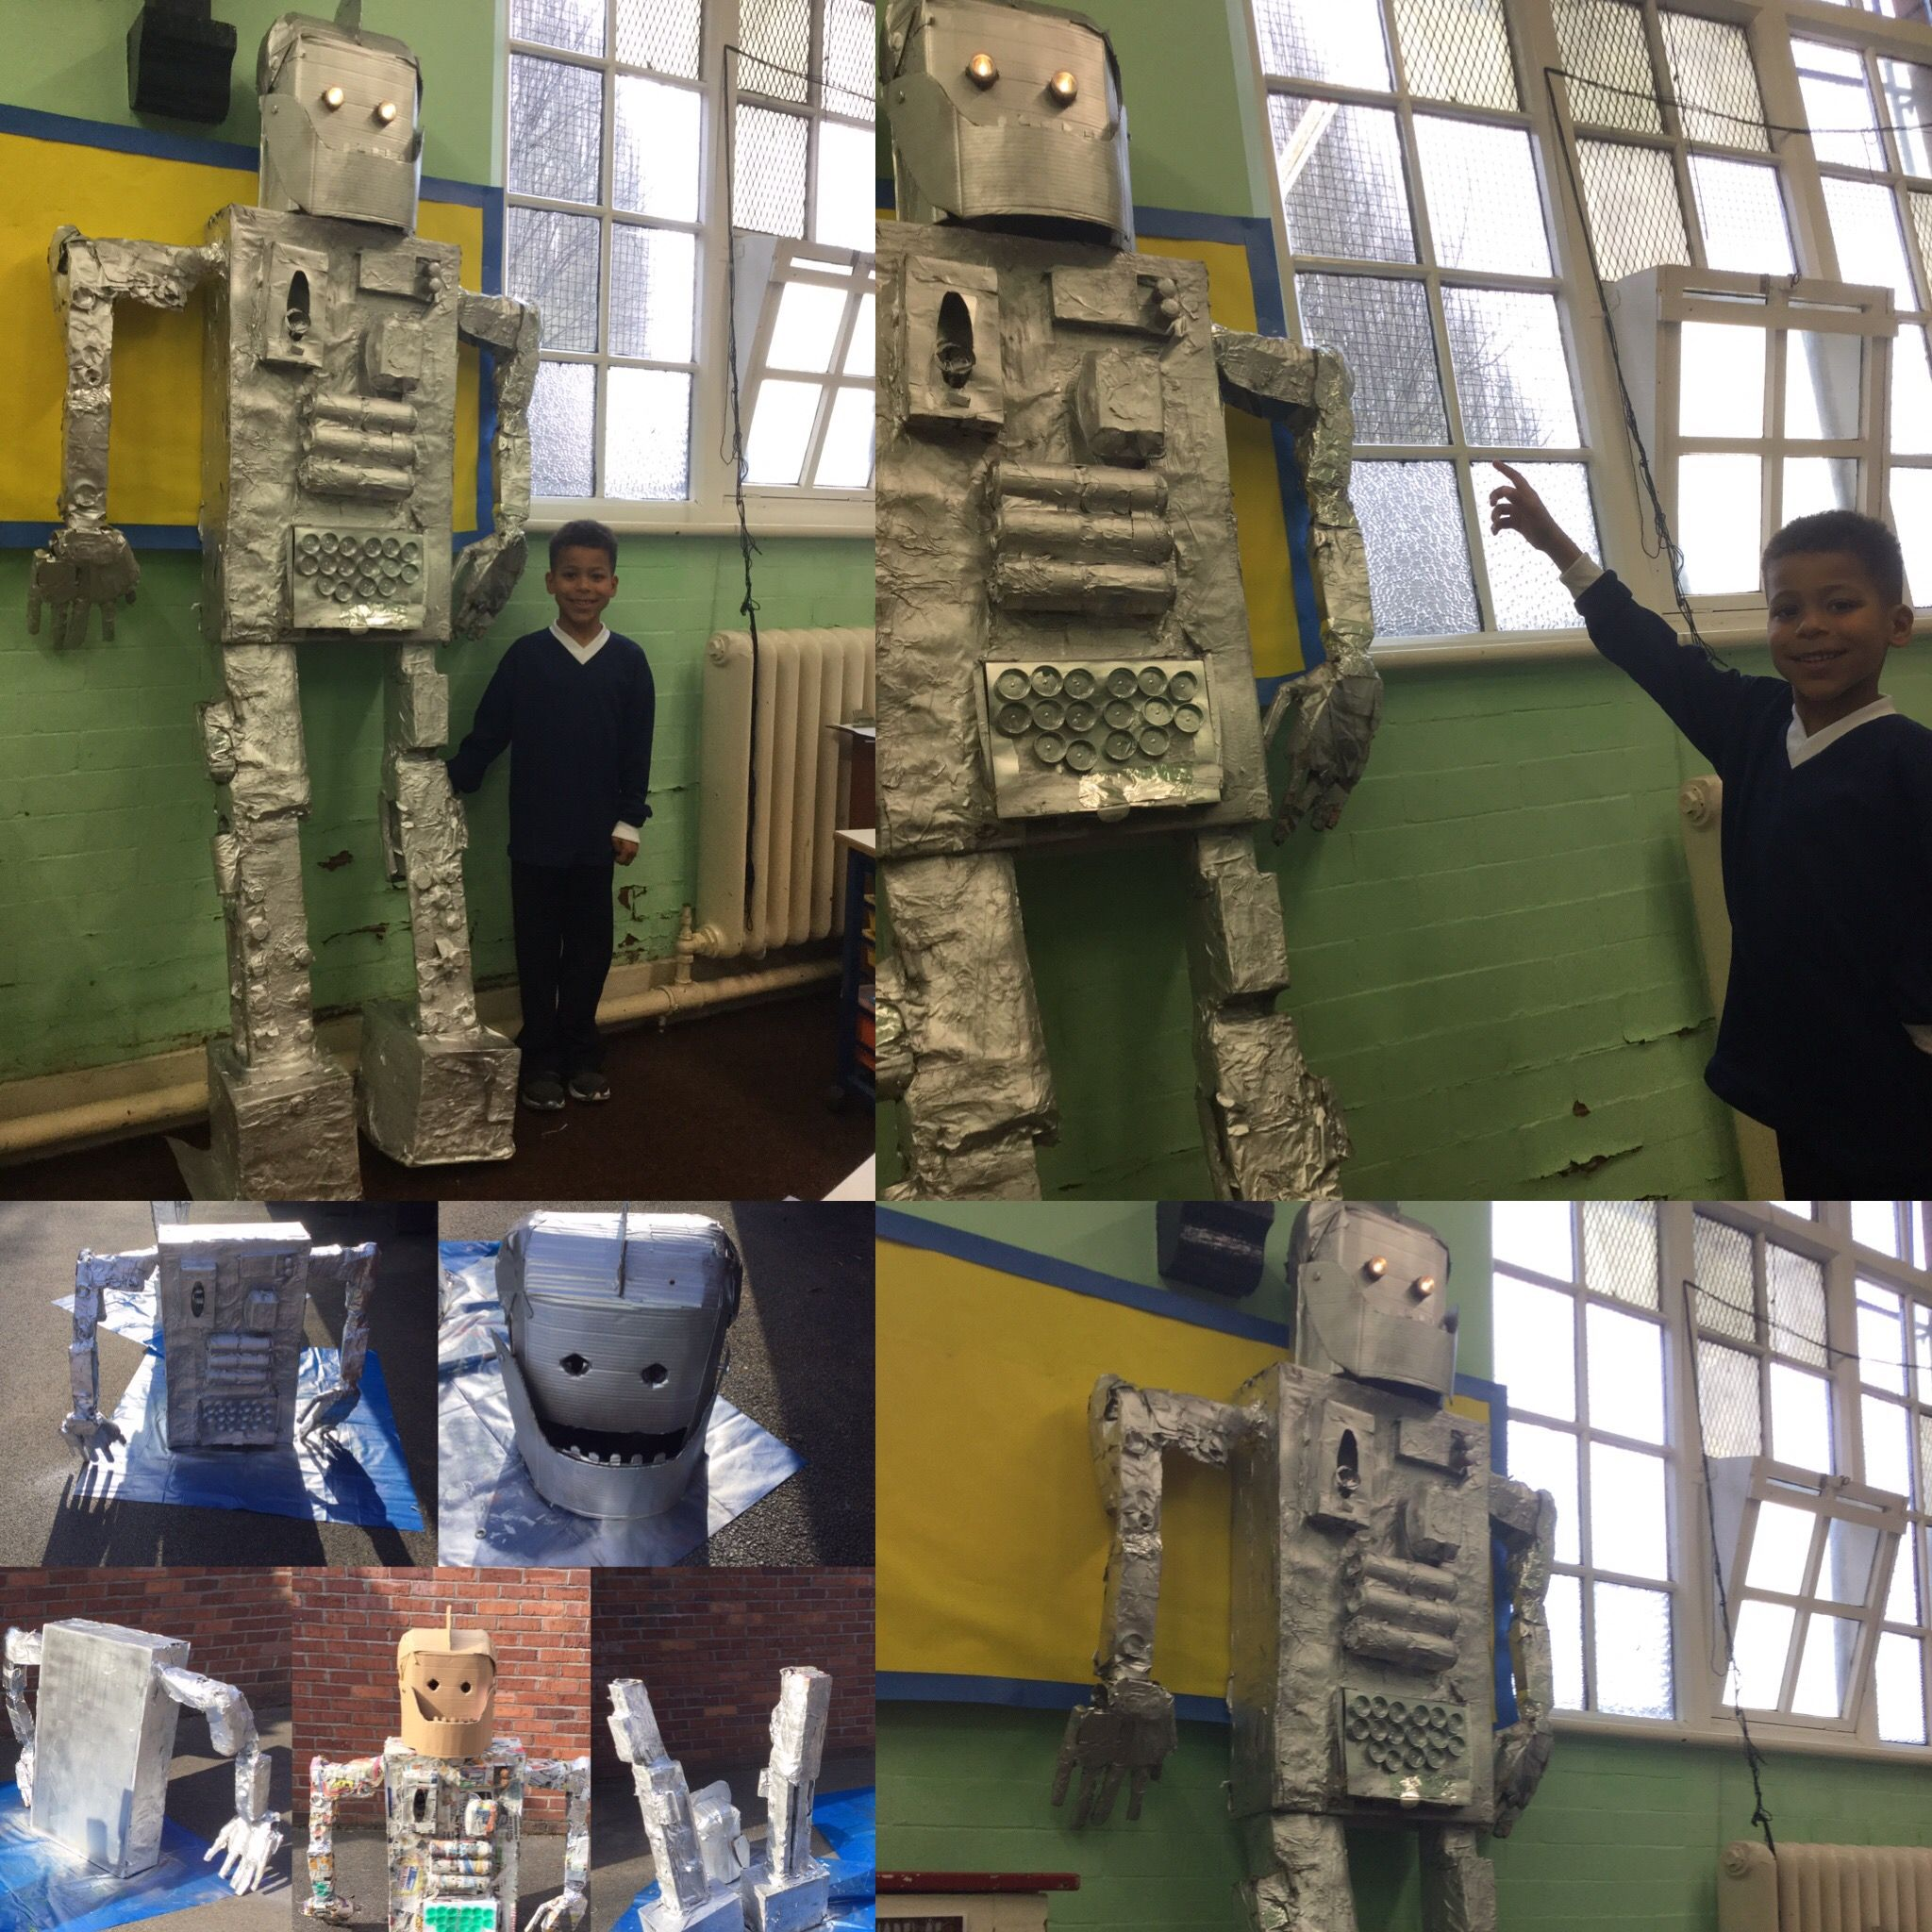 Making The Iron Man From Recycled Materials The Classic